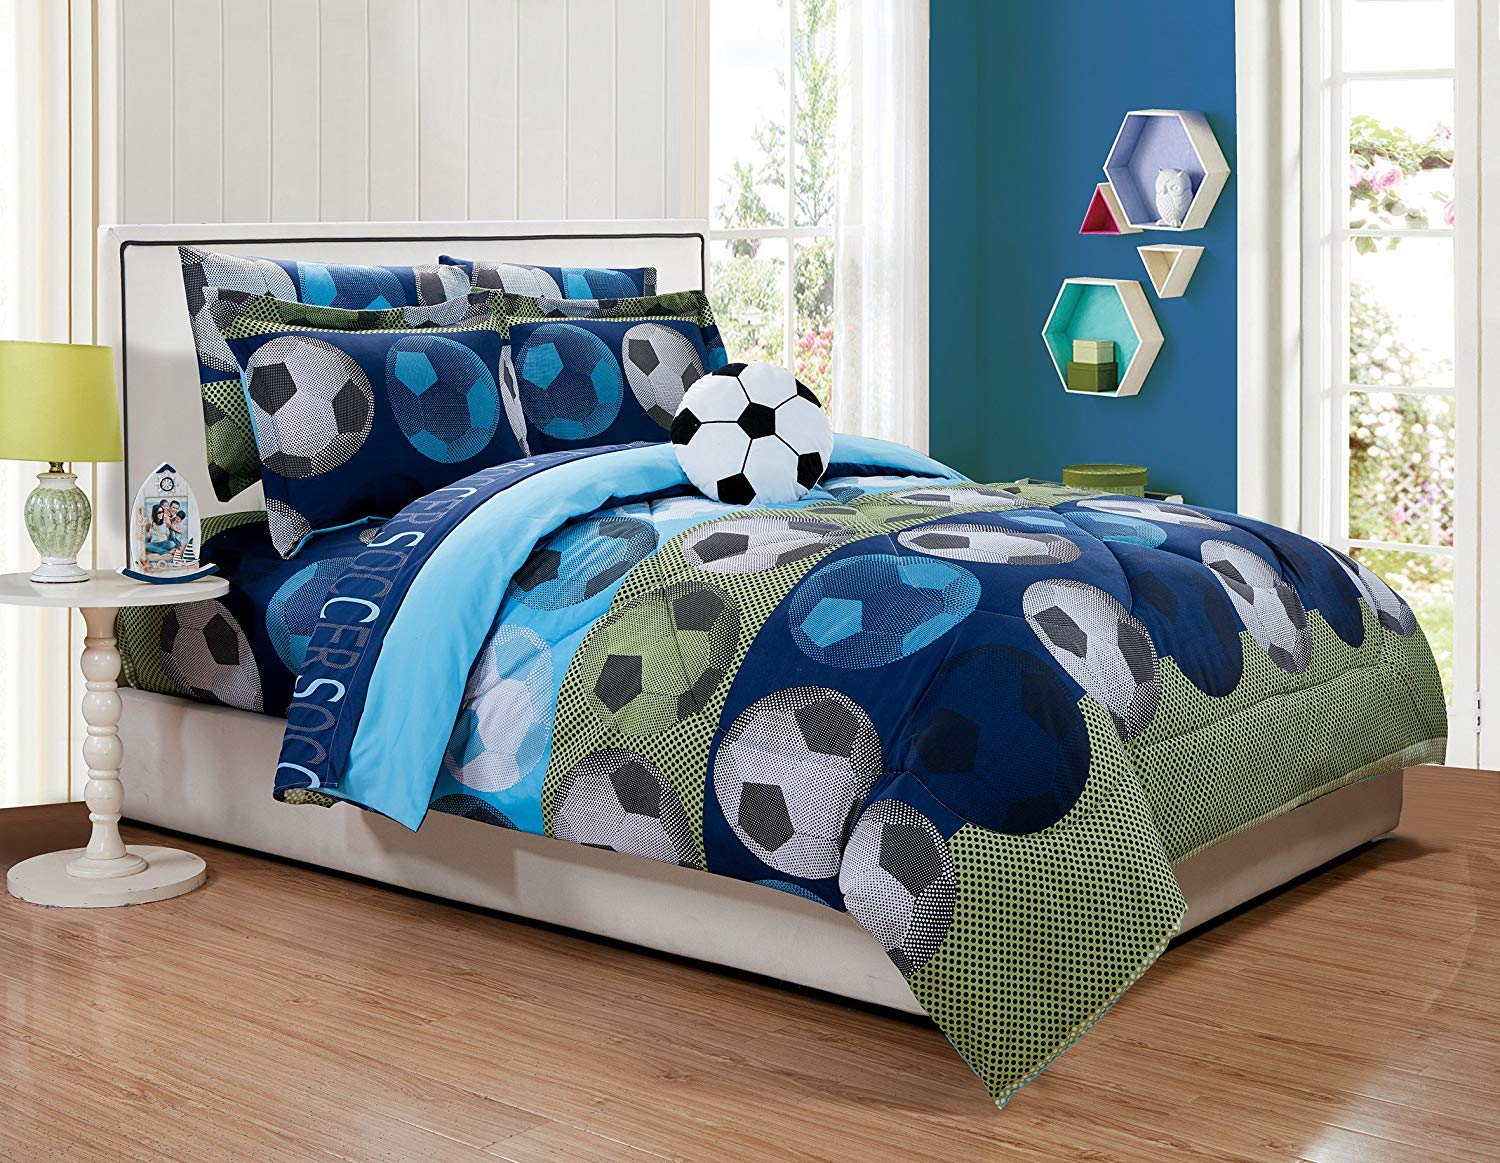 Fancy Linen Collection 8pc Queen Size Soccer Blue Green White Black Comforter Set with Furry Buddy Included